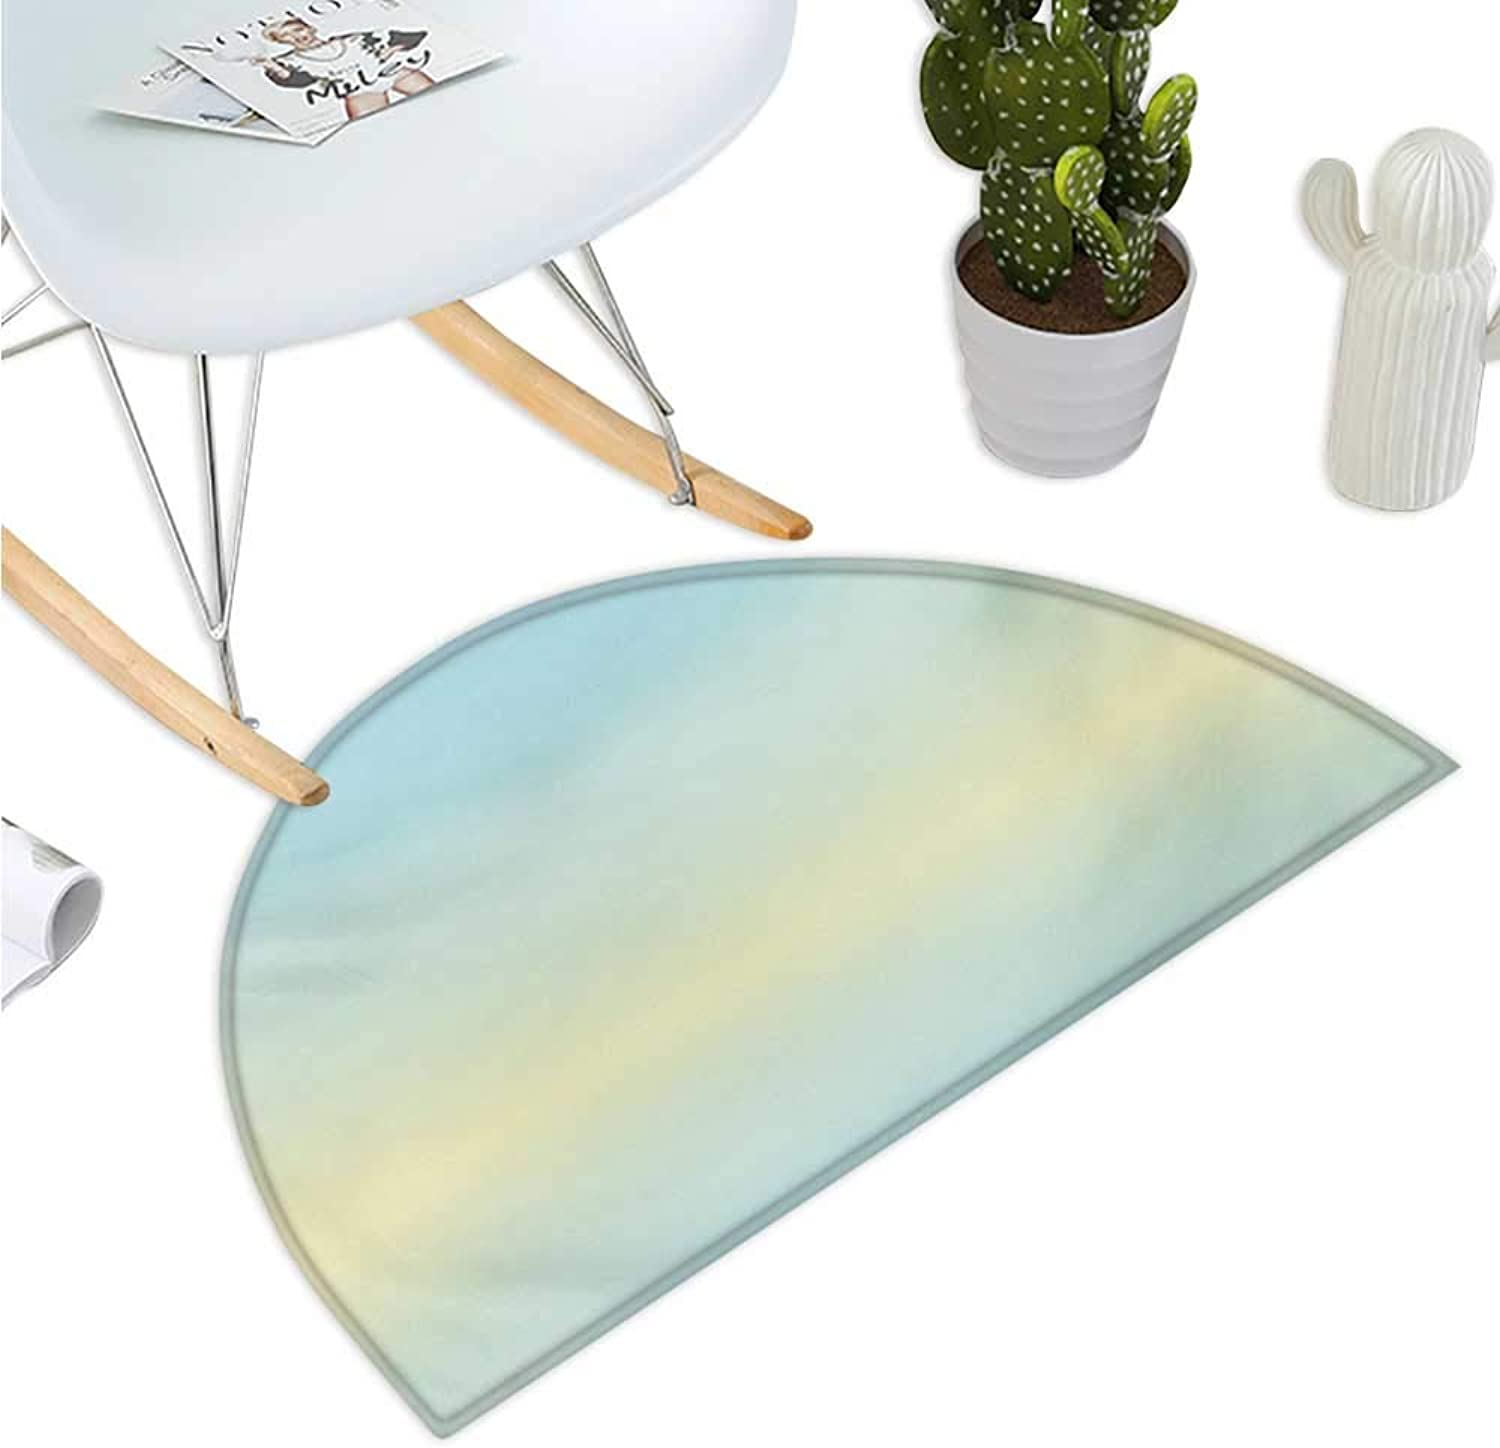 Teal Semicircular Cushion Defocused Abstract Design in The Center bluerred color Elements Sky bluee Like Artwork Bathroom Mat H 47.2  xD 70.8  Baby bluee